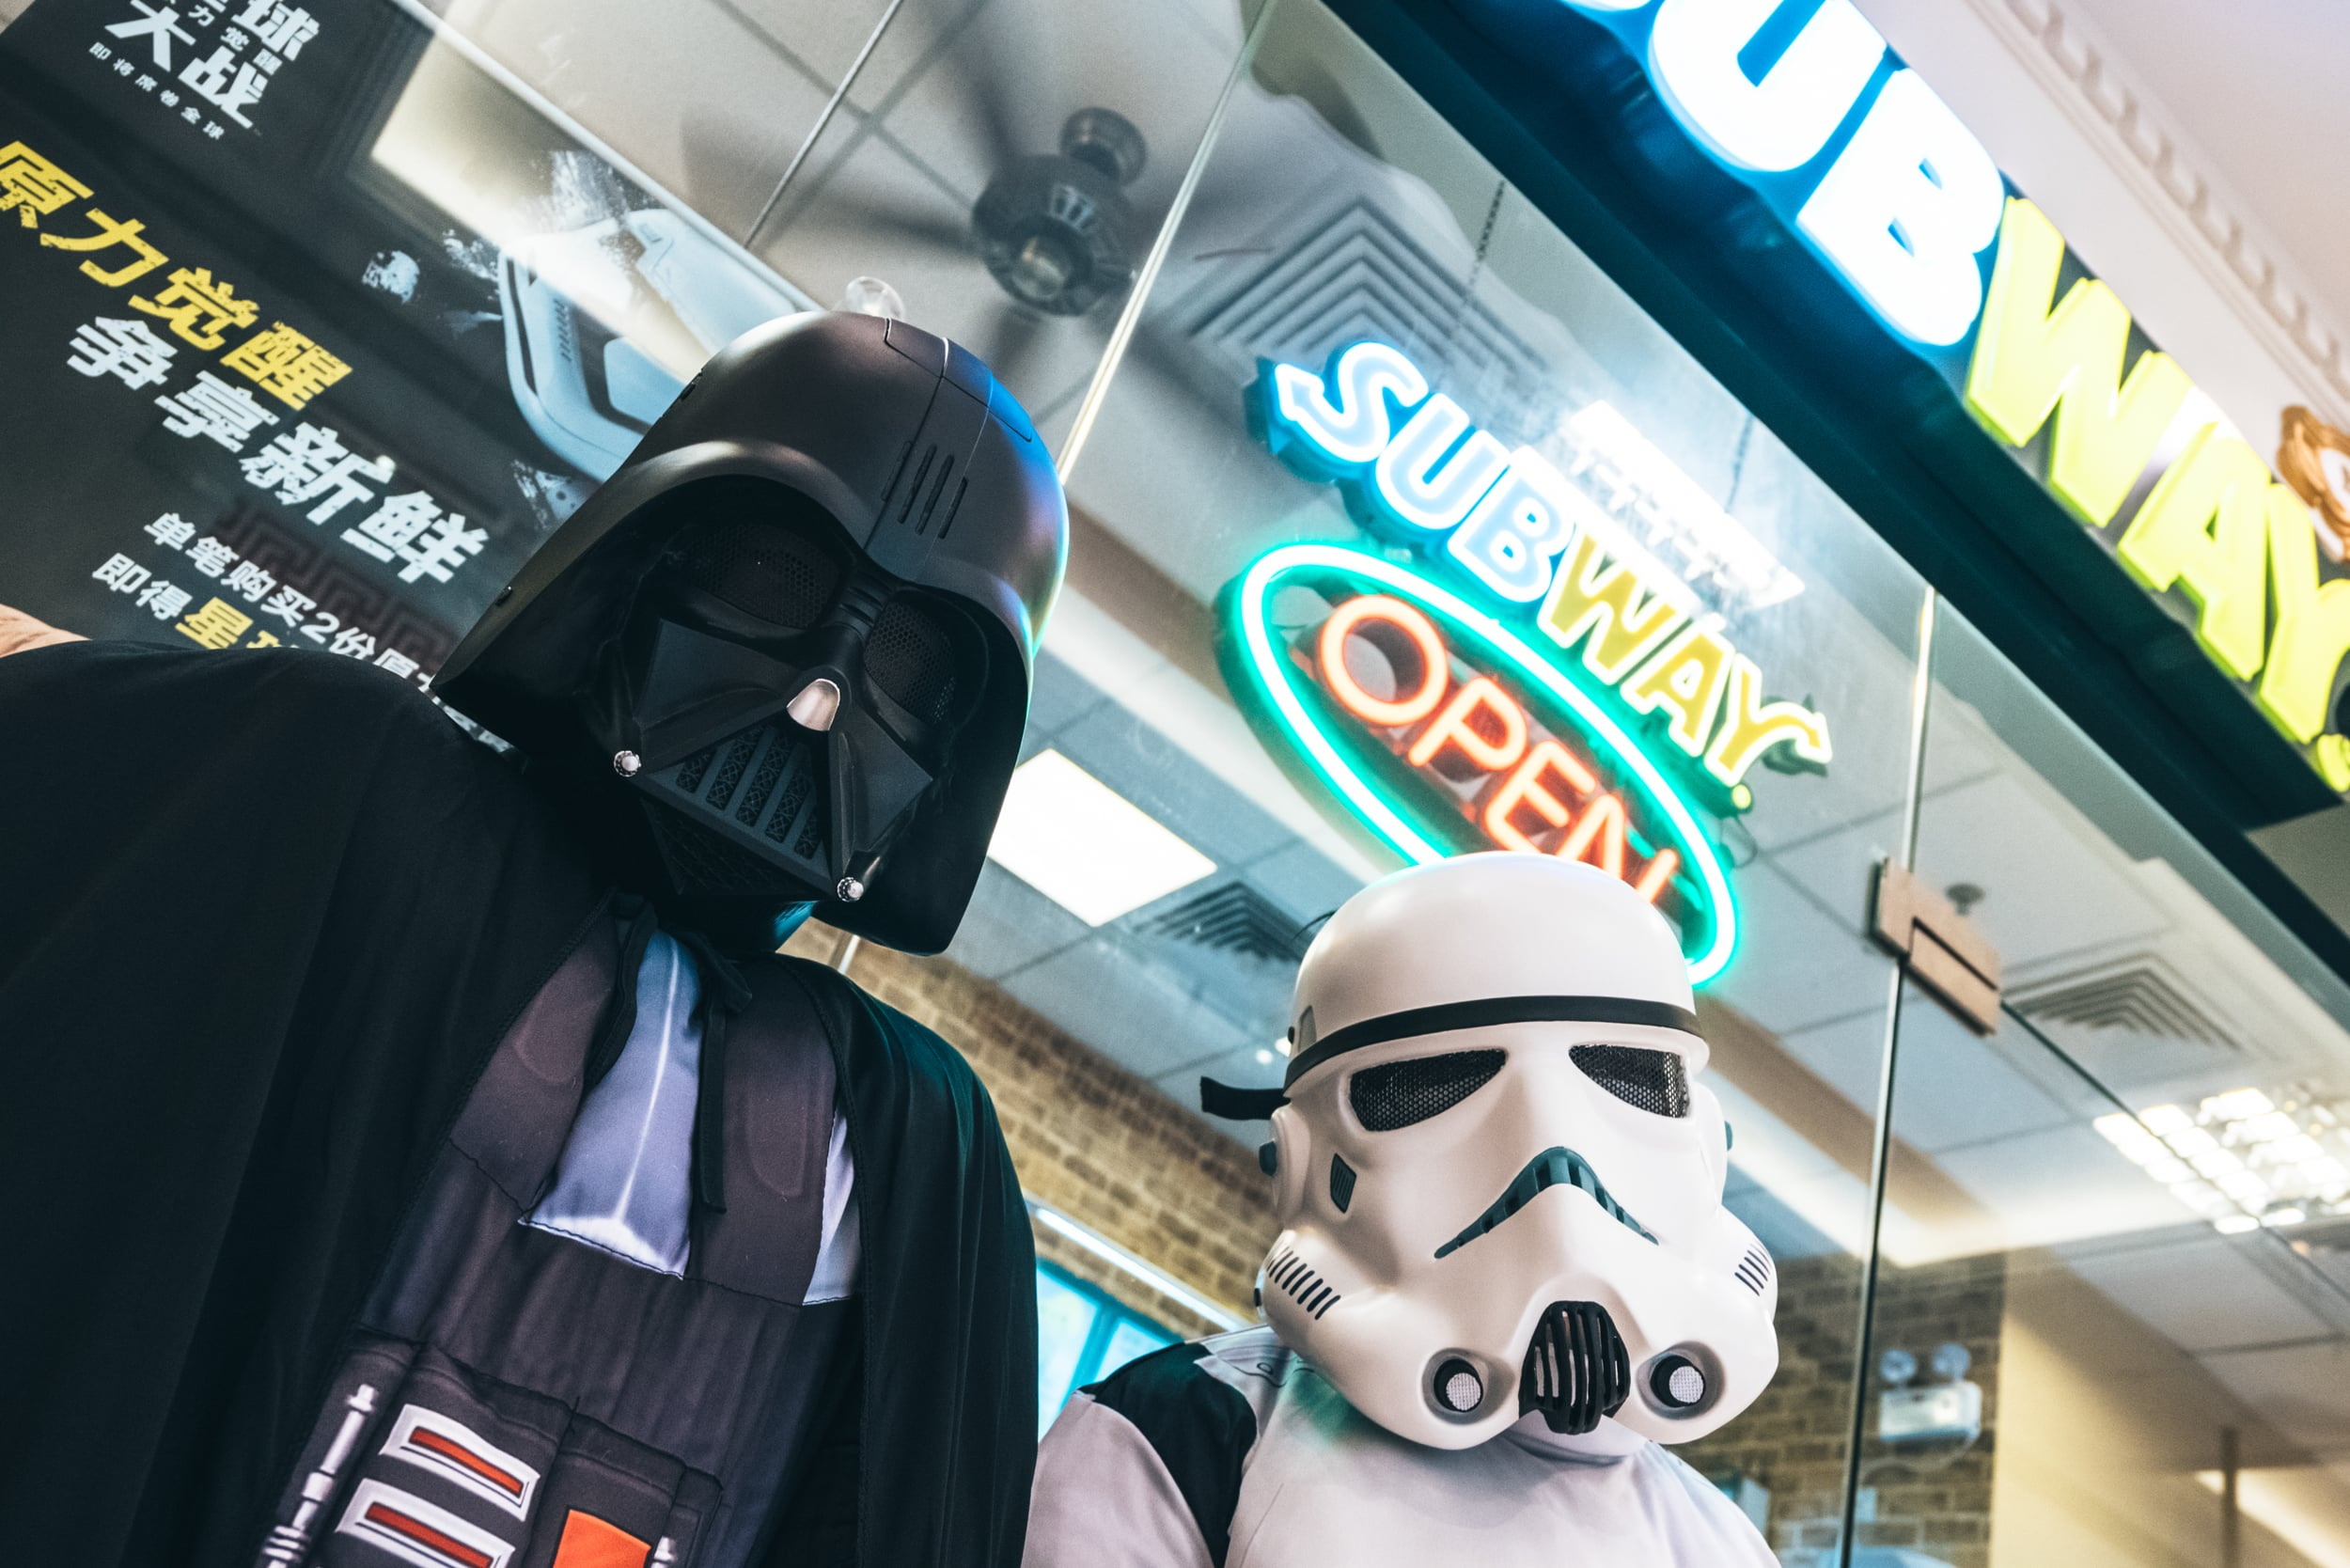 subway, star wars promo